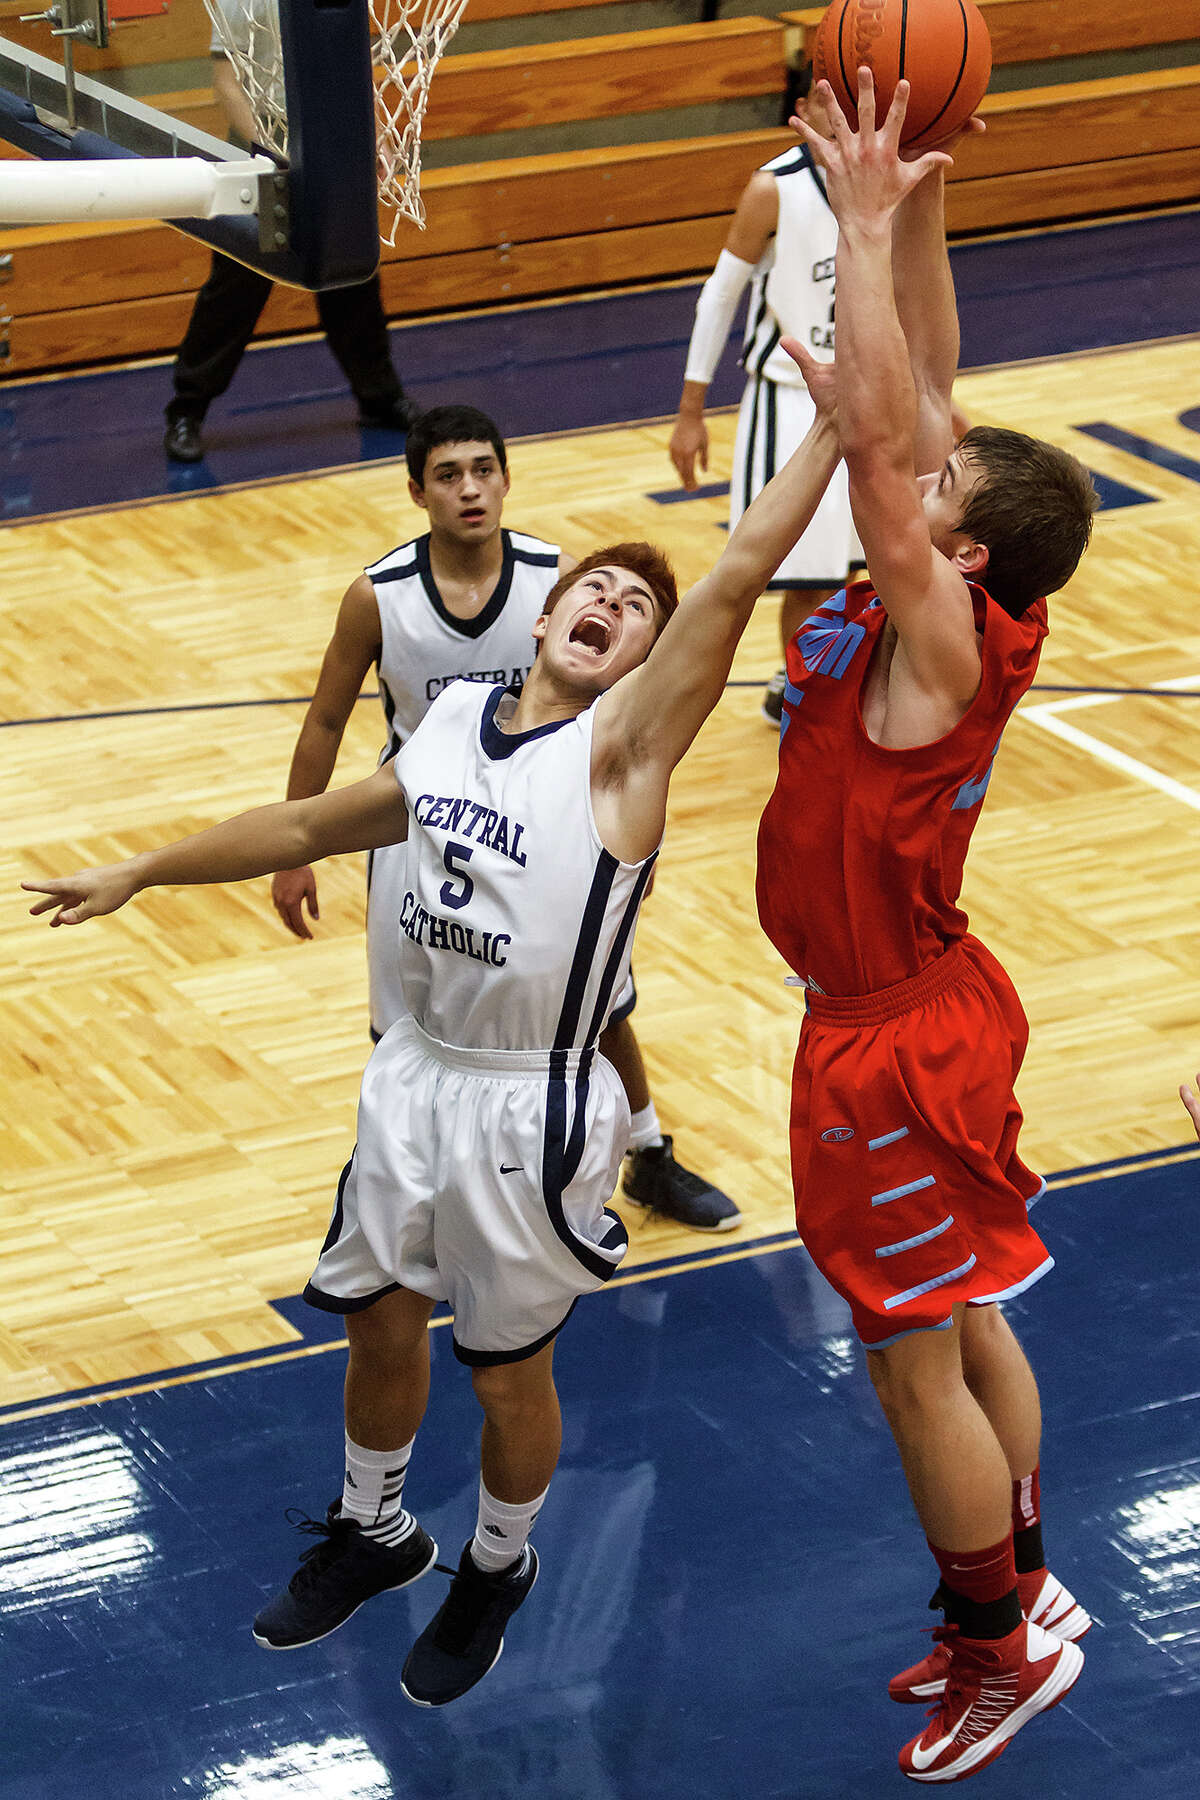 Central Catholic's Joseph Nava (left) fights with Antonian's Reagan Keogh during the second half of their game at Paul Taylor Field House on Jan. 26, 2013. Central Catholic beat the Apaches 64-53. MARVIN PFEIFFER/ mpfeiffer@express-news.net